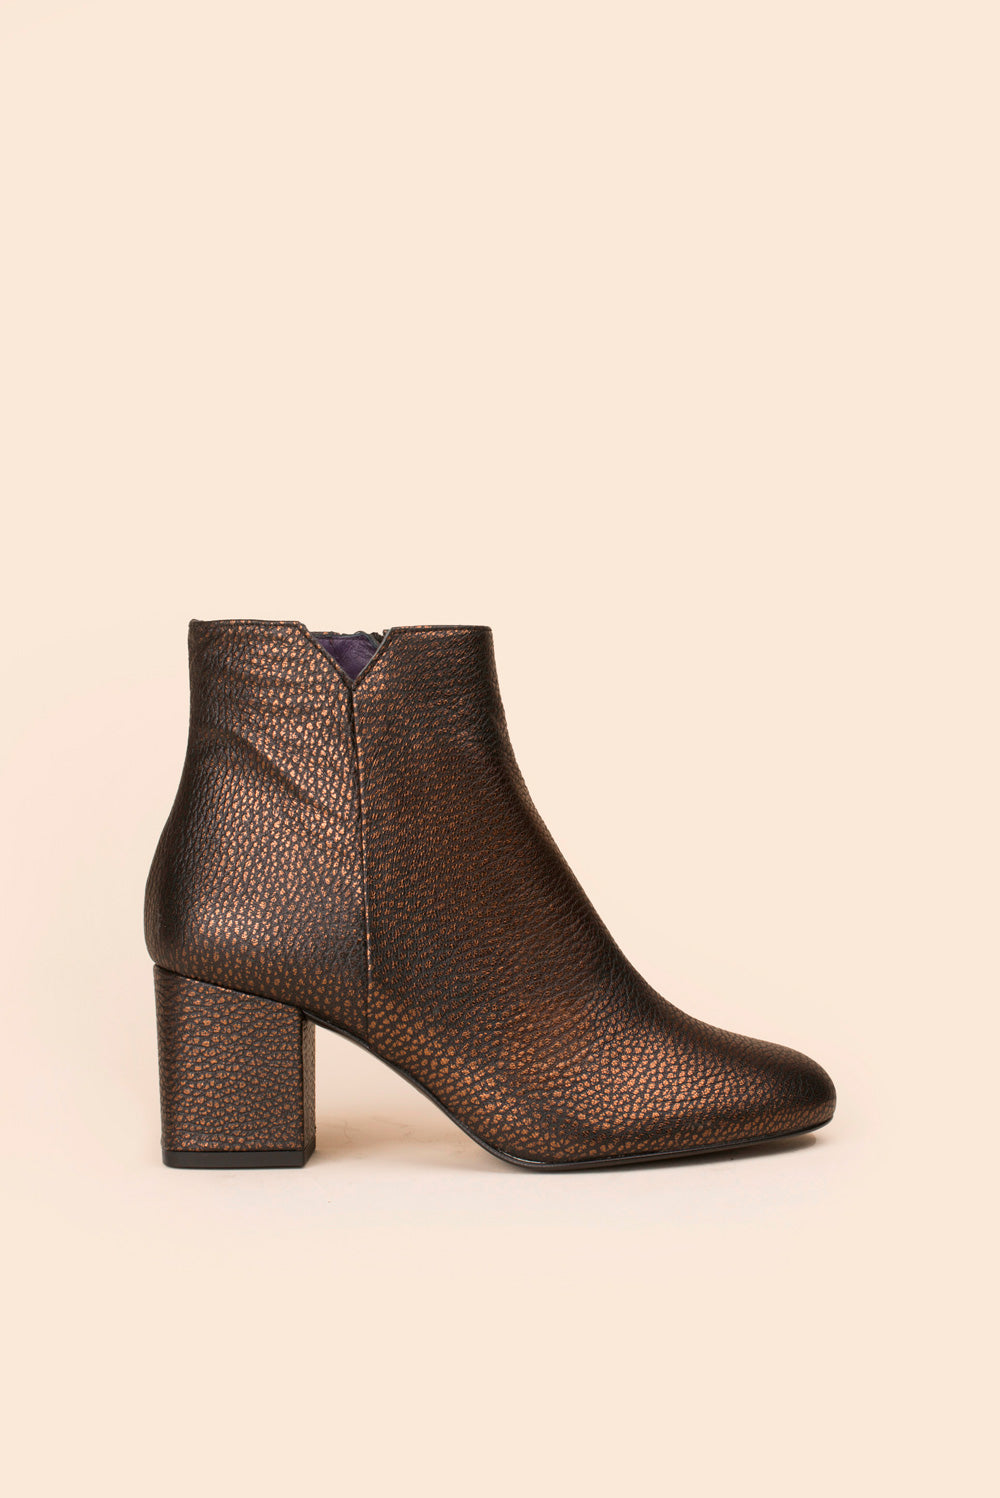 Bottines Virgin cuir bronze Anaki Paris